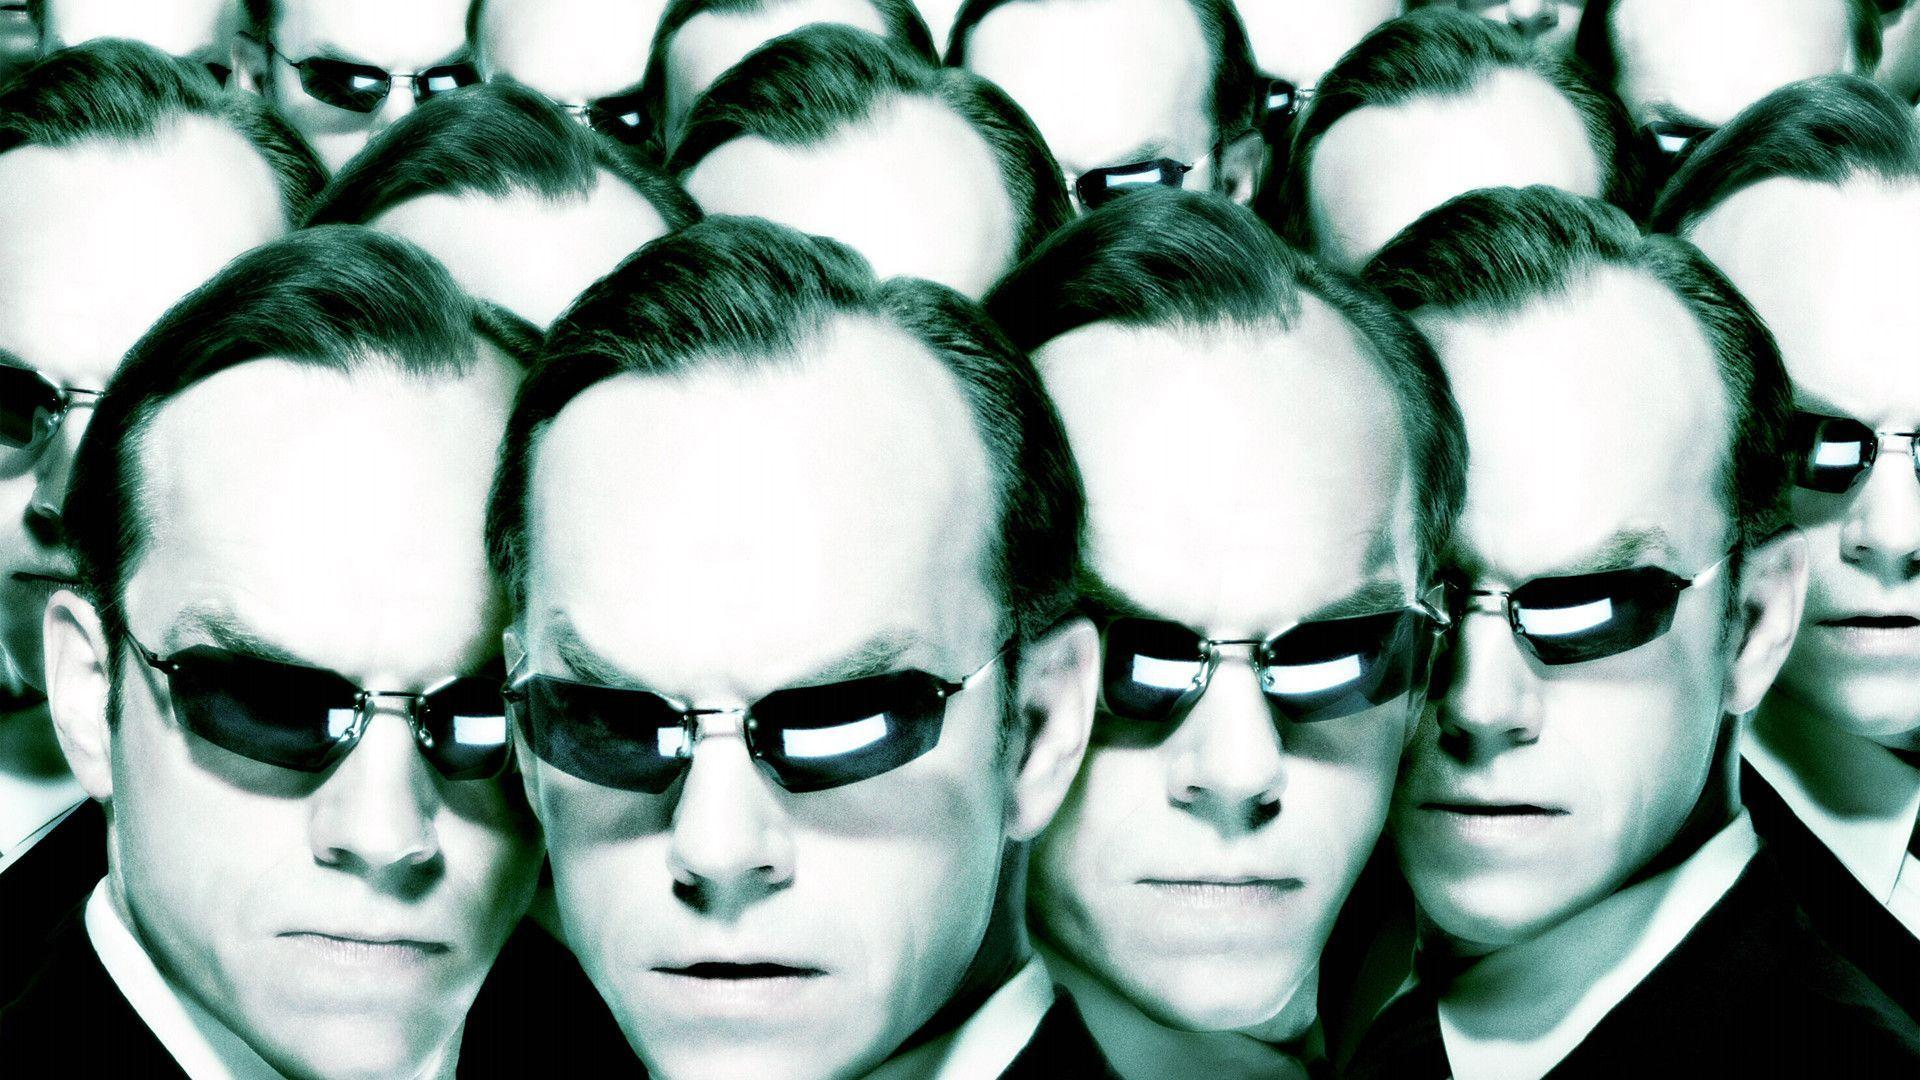 Image For > Matrix Reloaded Wallpapers